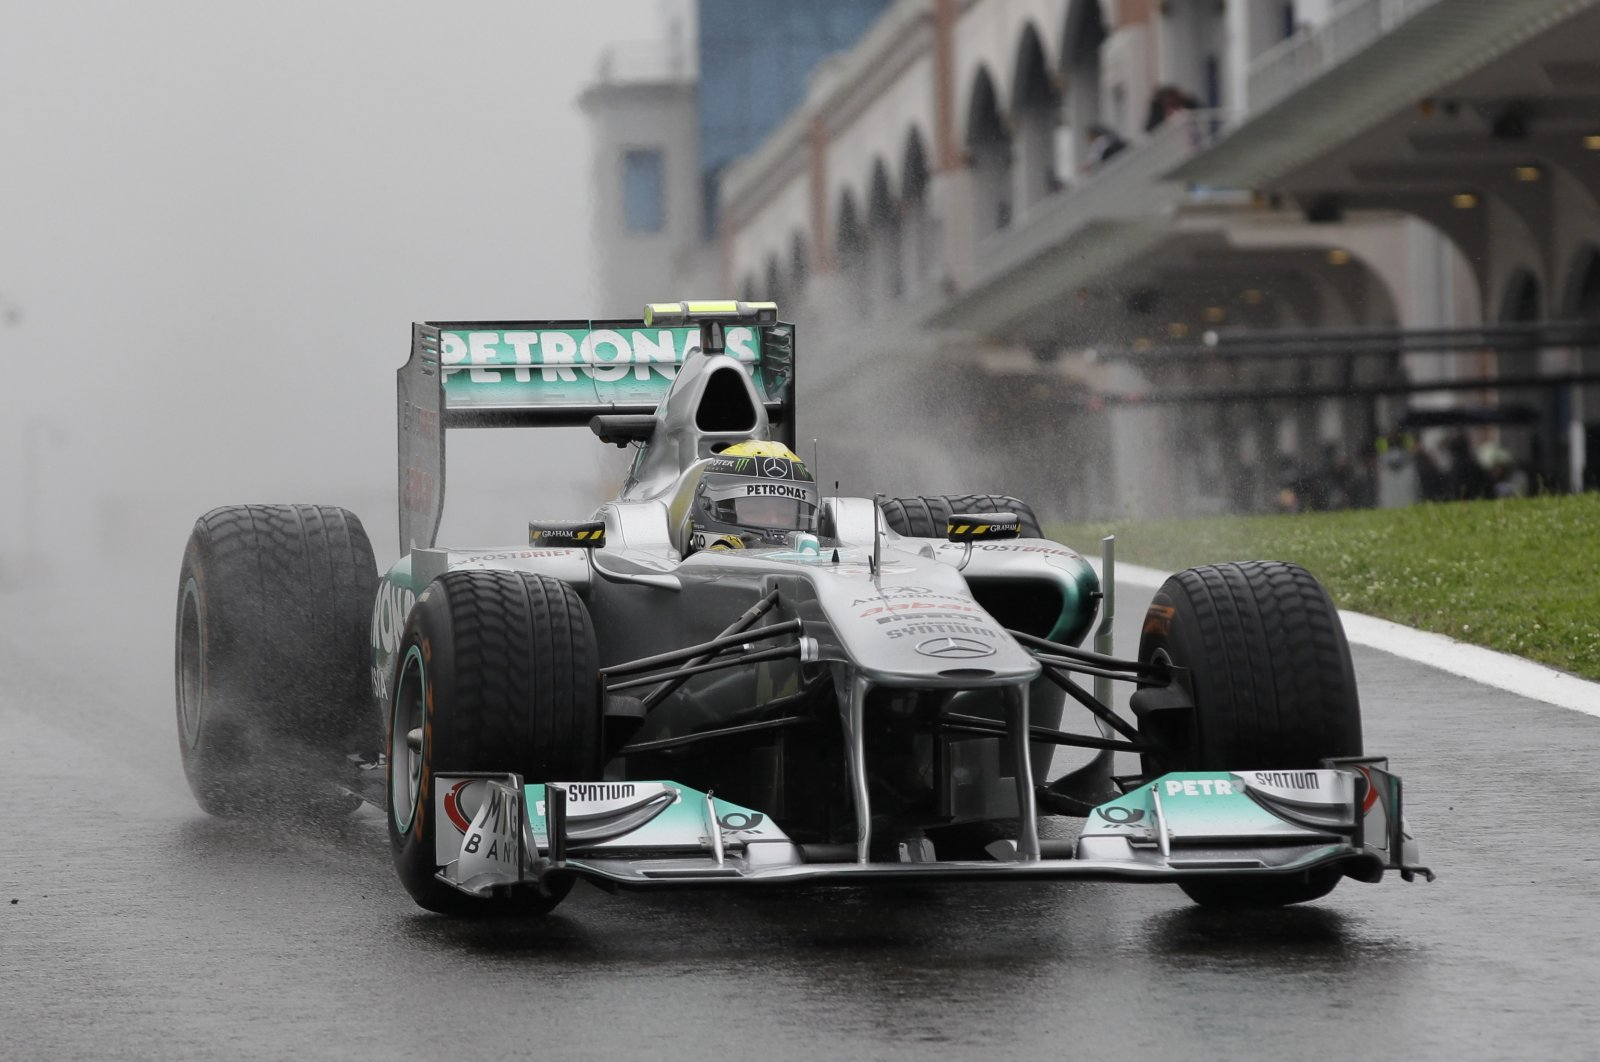 Mercedes driver Nico Rosberg steers his car during a free practice session before the Turkish Grand Prix race, at the Istanbul Park circuit racetrack, in Istanbul, Turkey, May 6, 2011. (AP Photo)